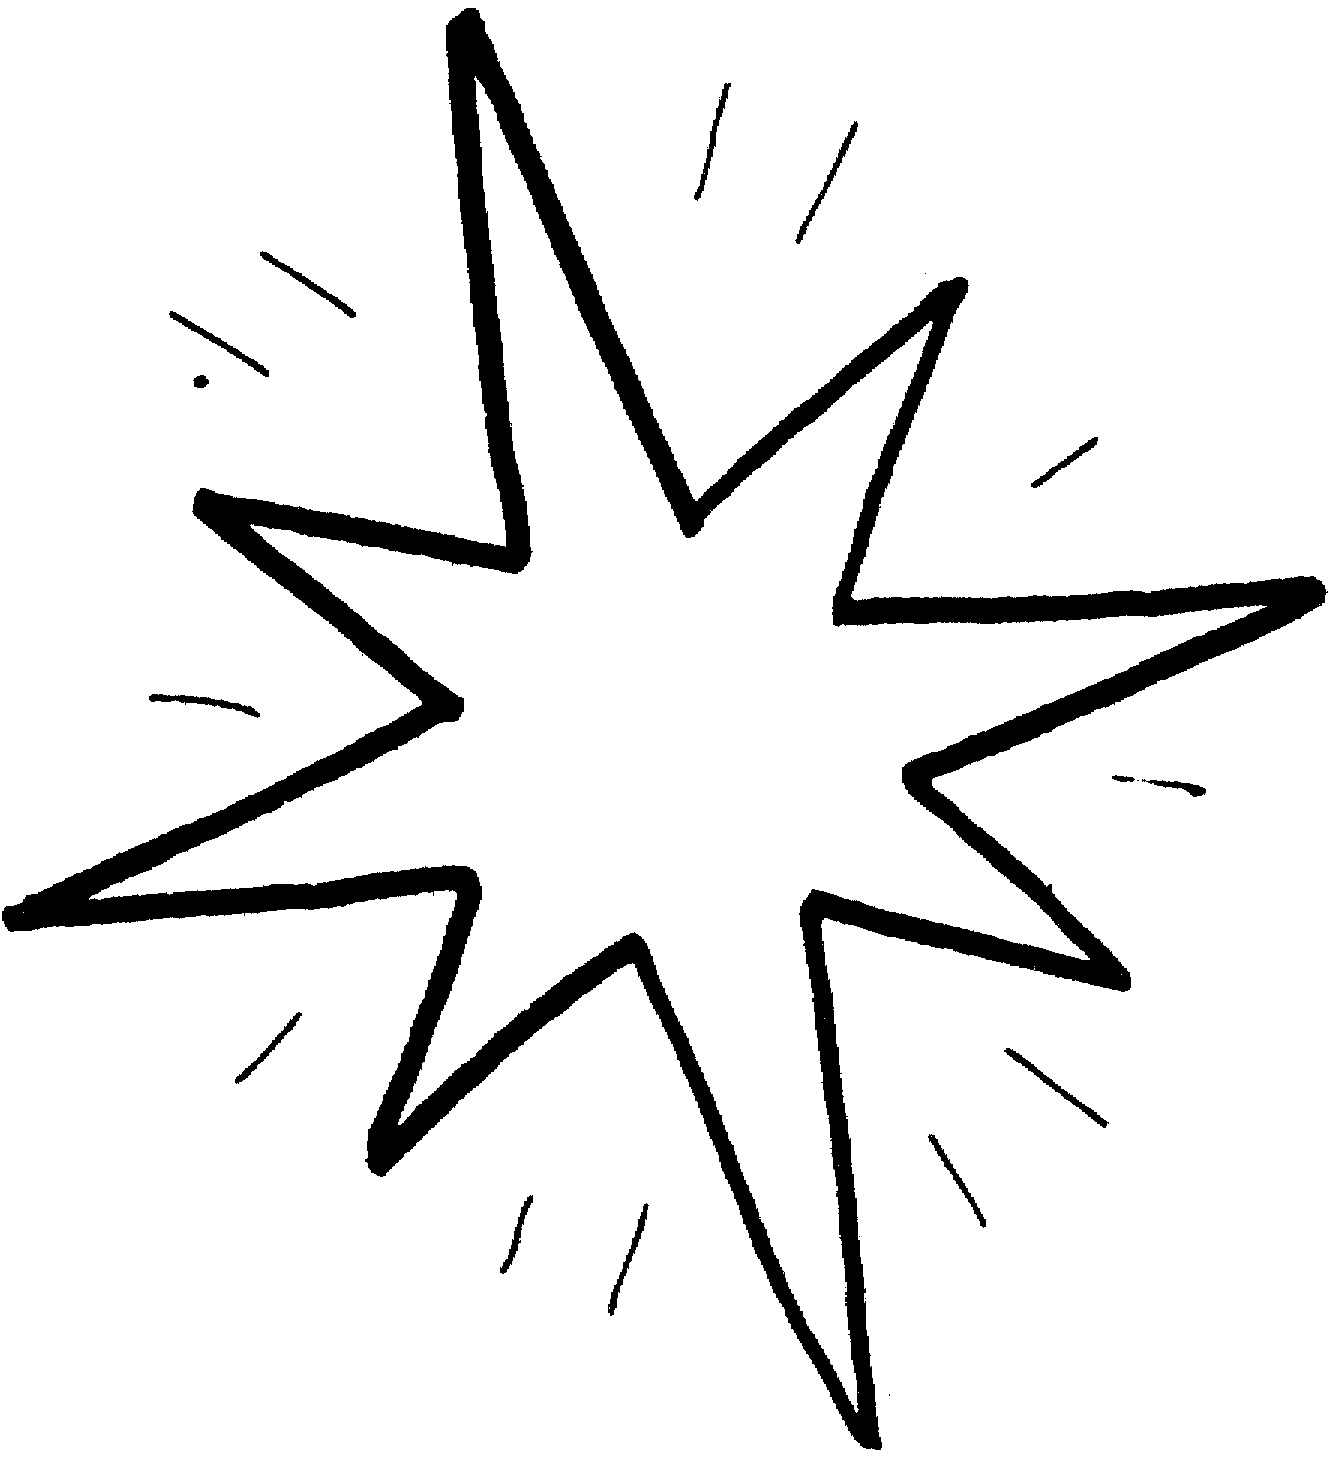 colouring pages stars star coloring pages for childrens printable for free pages stars colouring 1 2